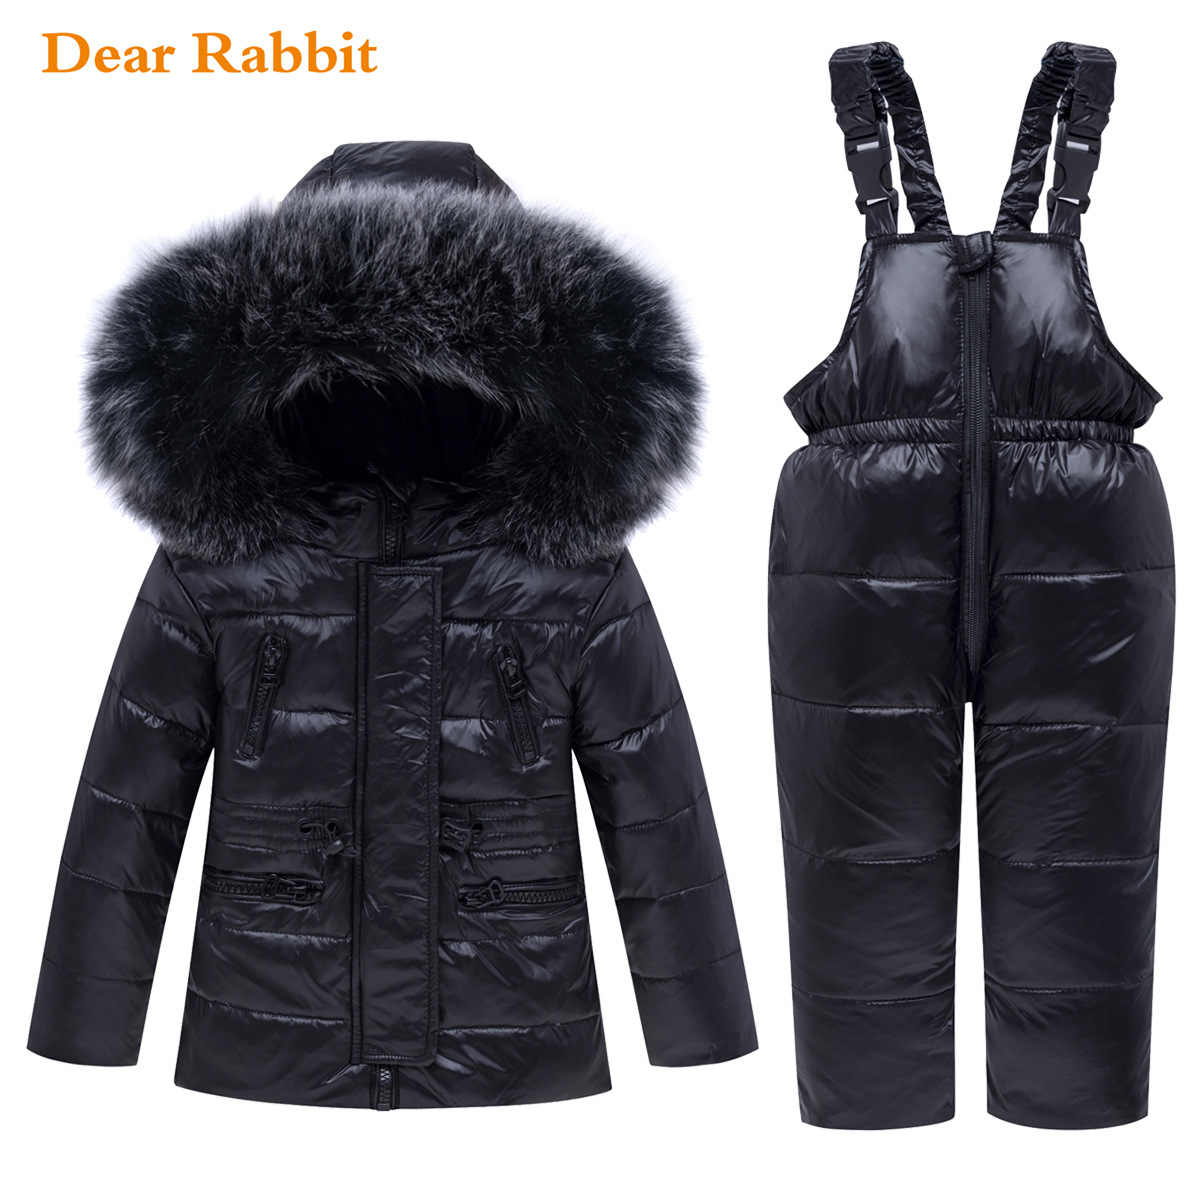 2019 new Winter Baby Boy Girl clothing Set warm Down Jacket coat Snowsuit Children parka Kids Clothes Ski suit Overalls overcoat